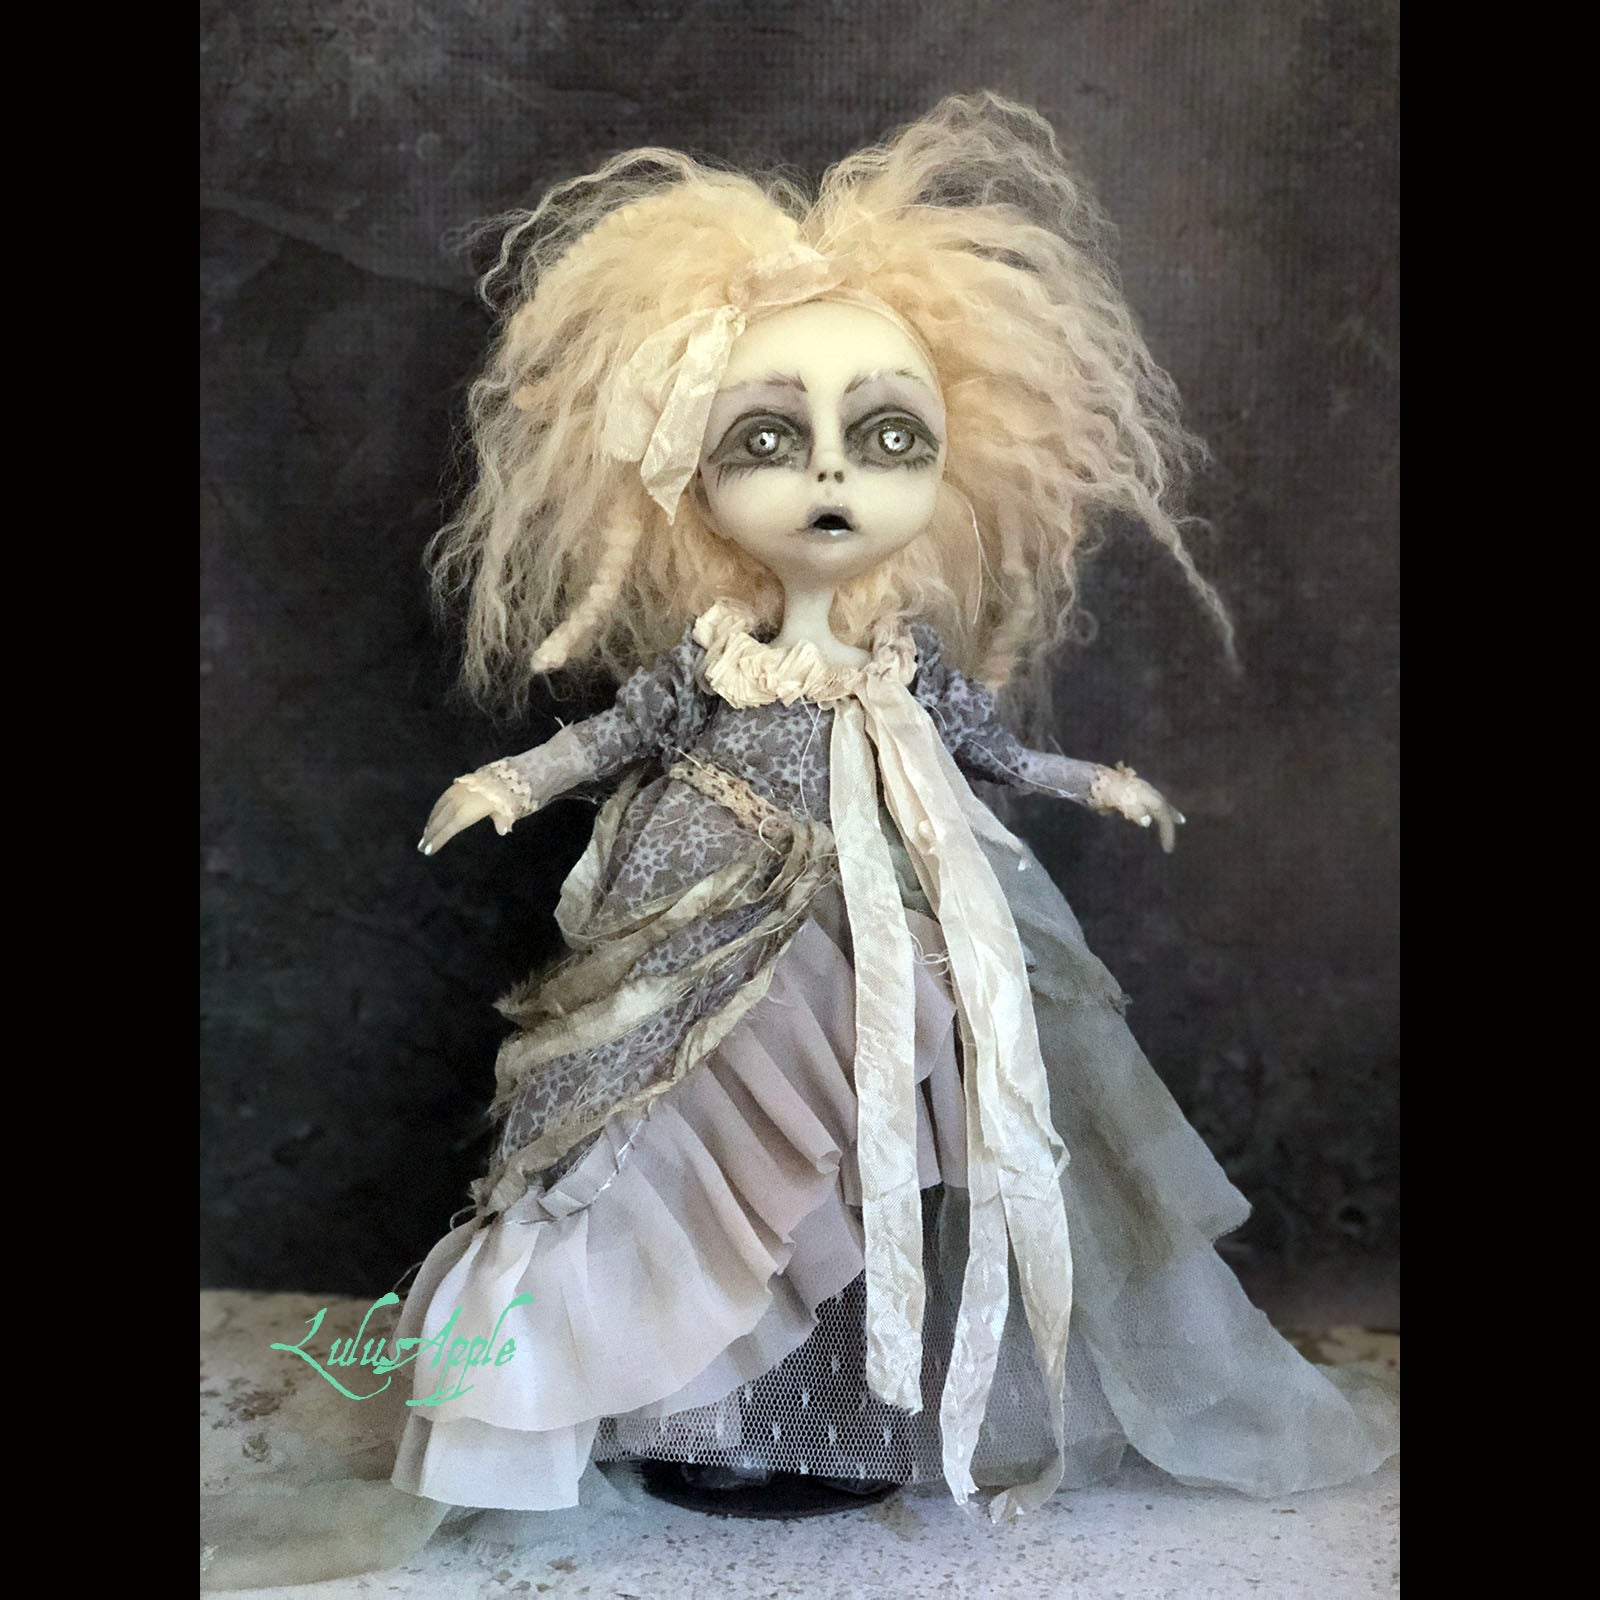 Estelle Ghostly Spirit Gothic Victorian LuLusApple Art Doll